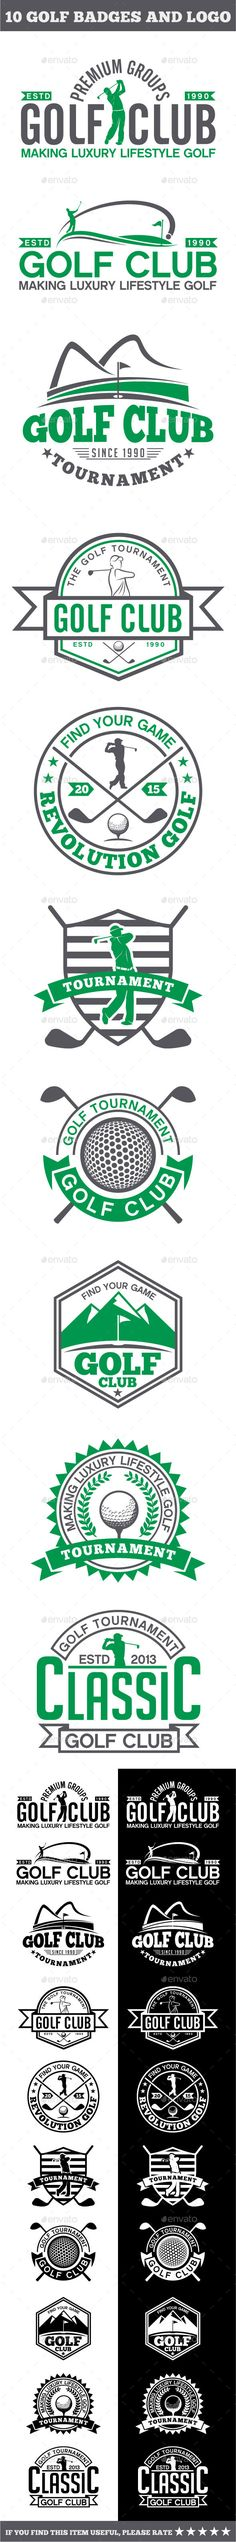 10 Golf Badges-Stickers & Logos - Badges & Stickers Web Elements